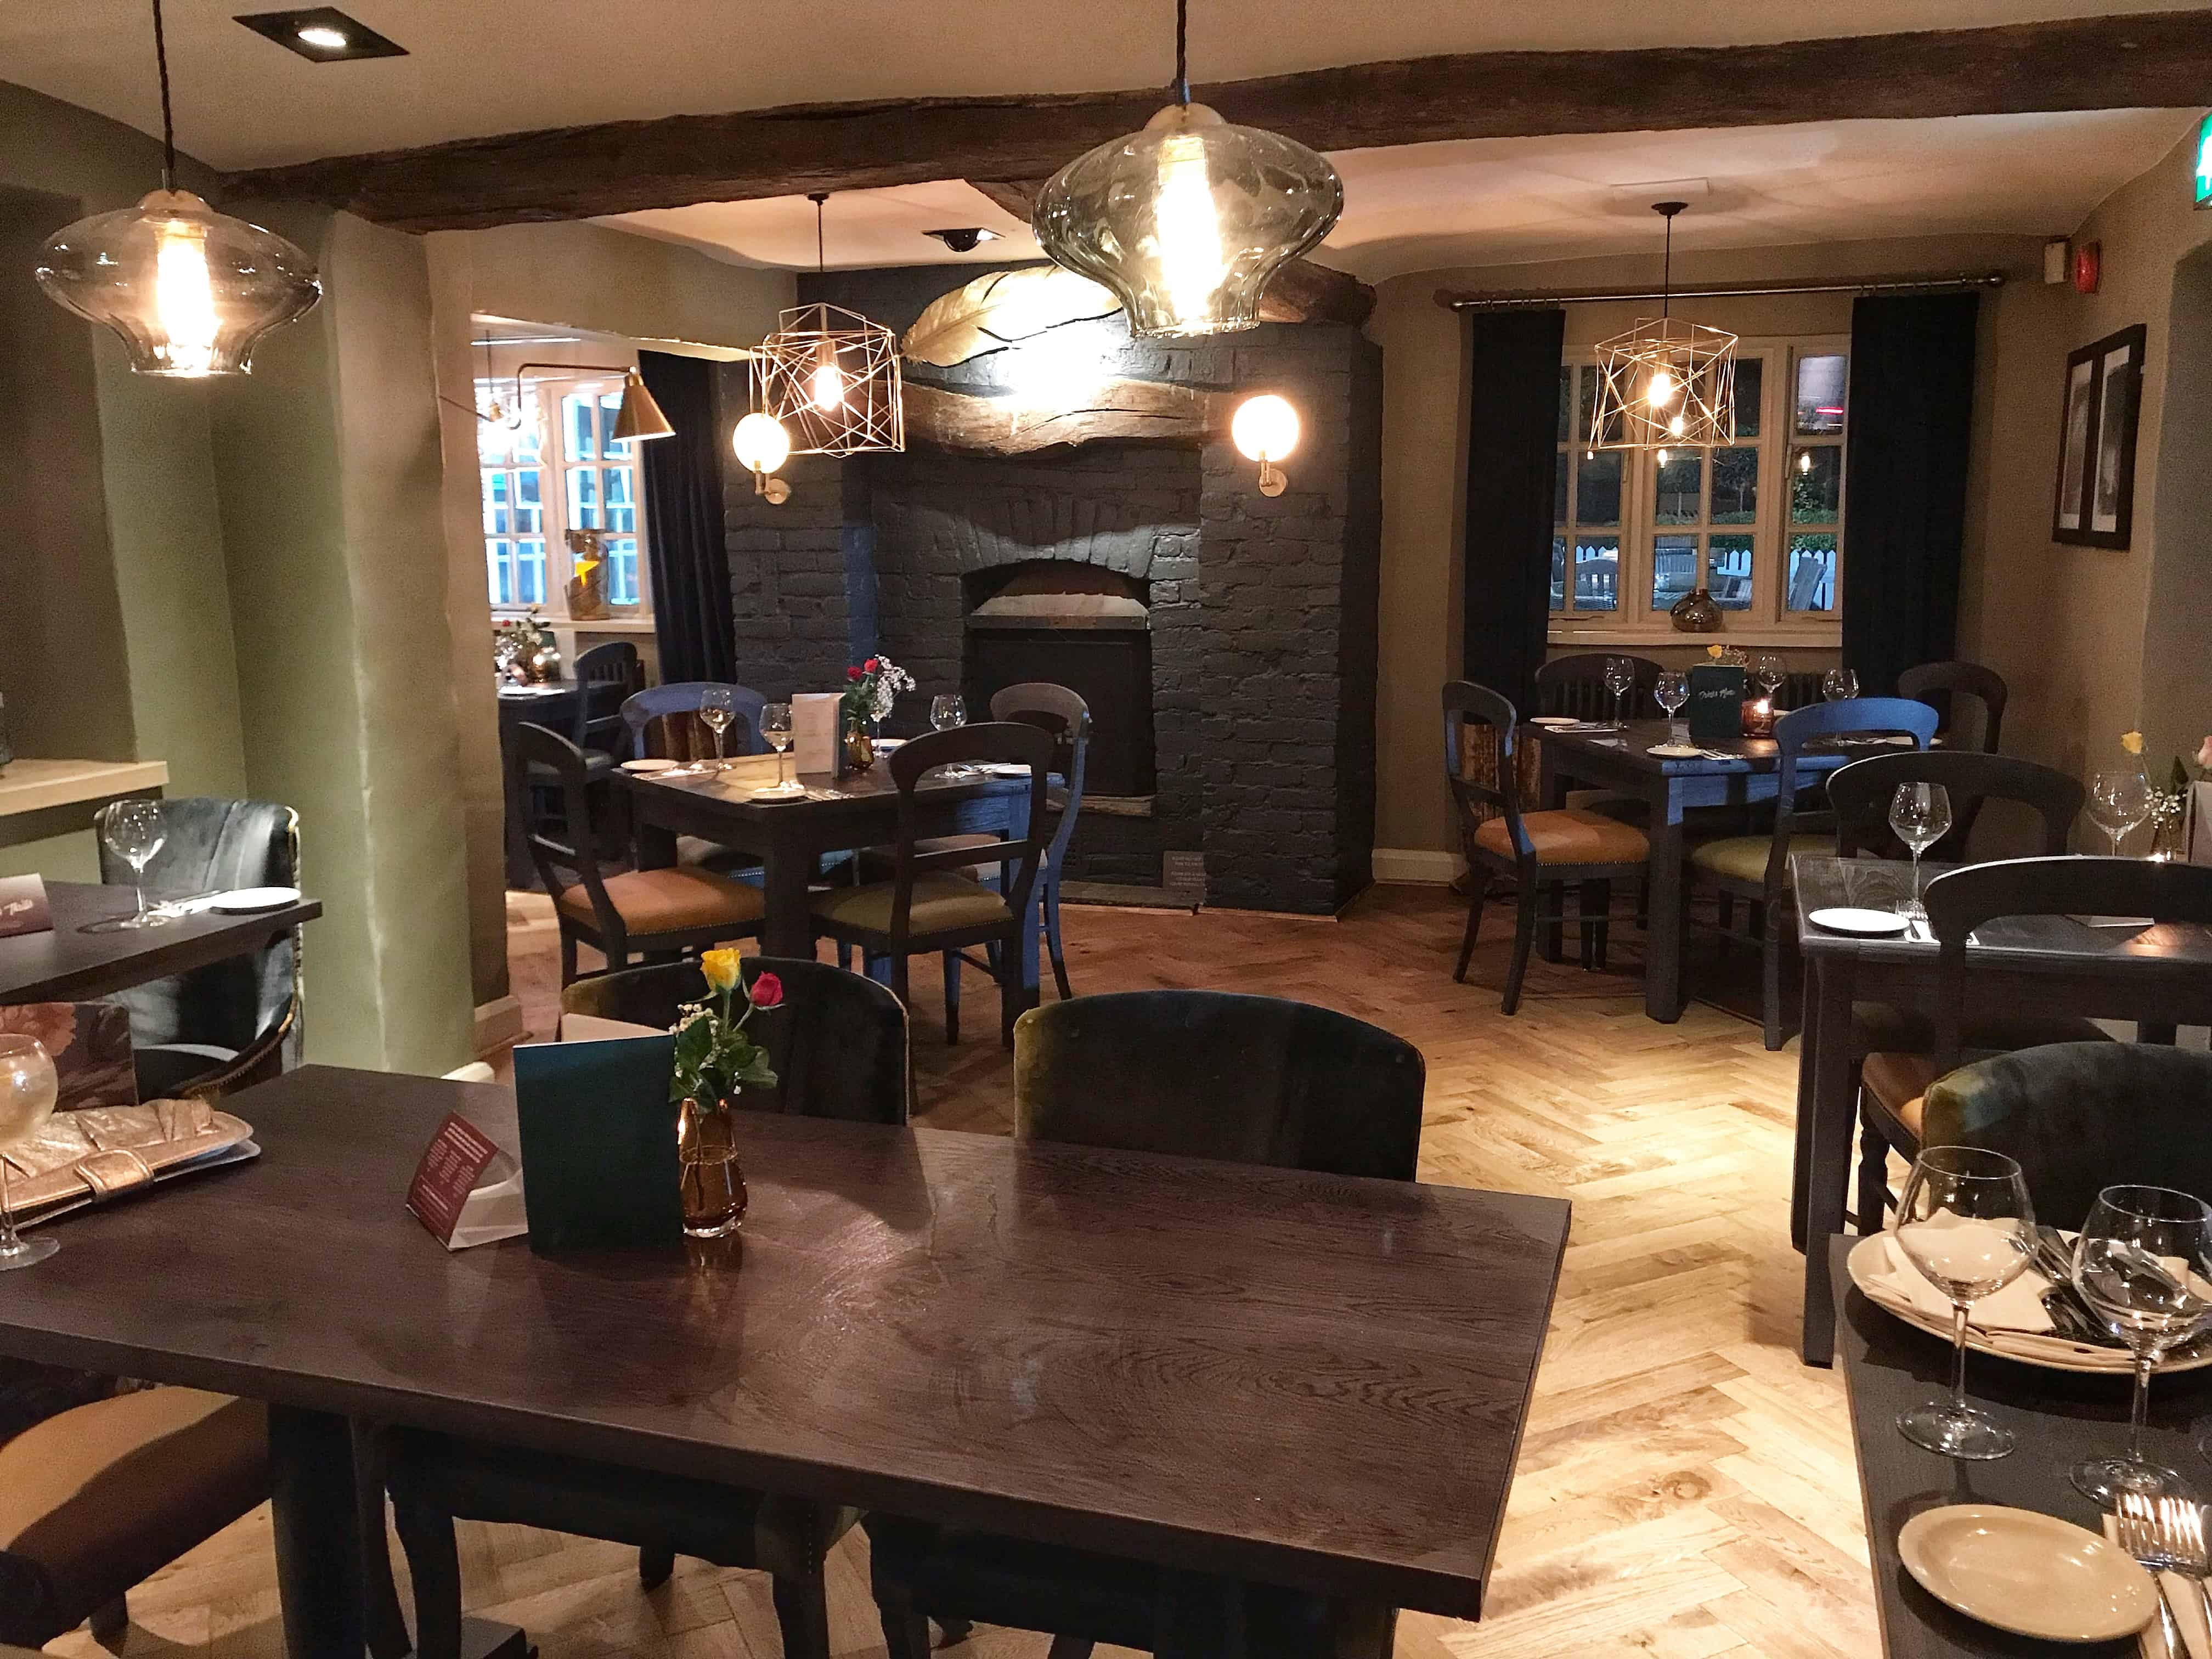 A Sneak Peek Inside the Refurbished Black Horse Pub and Restaurant